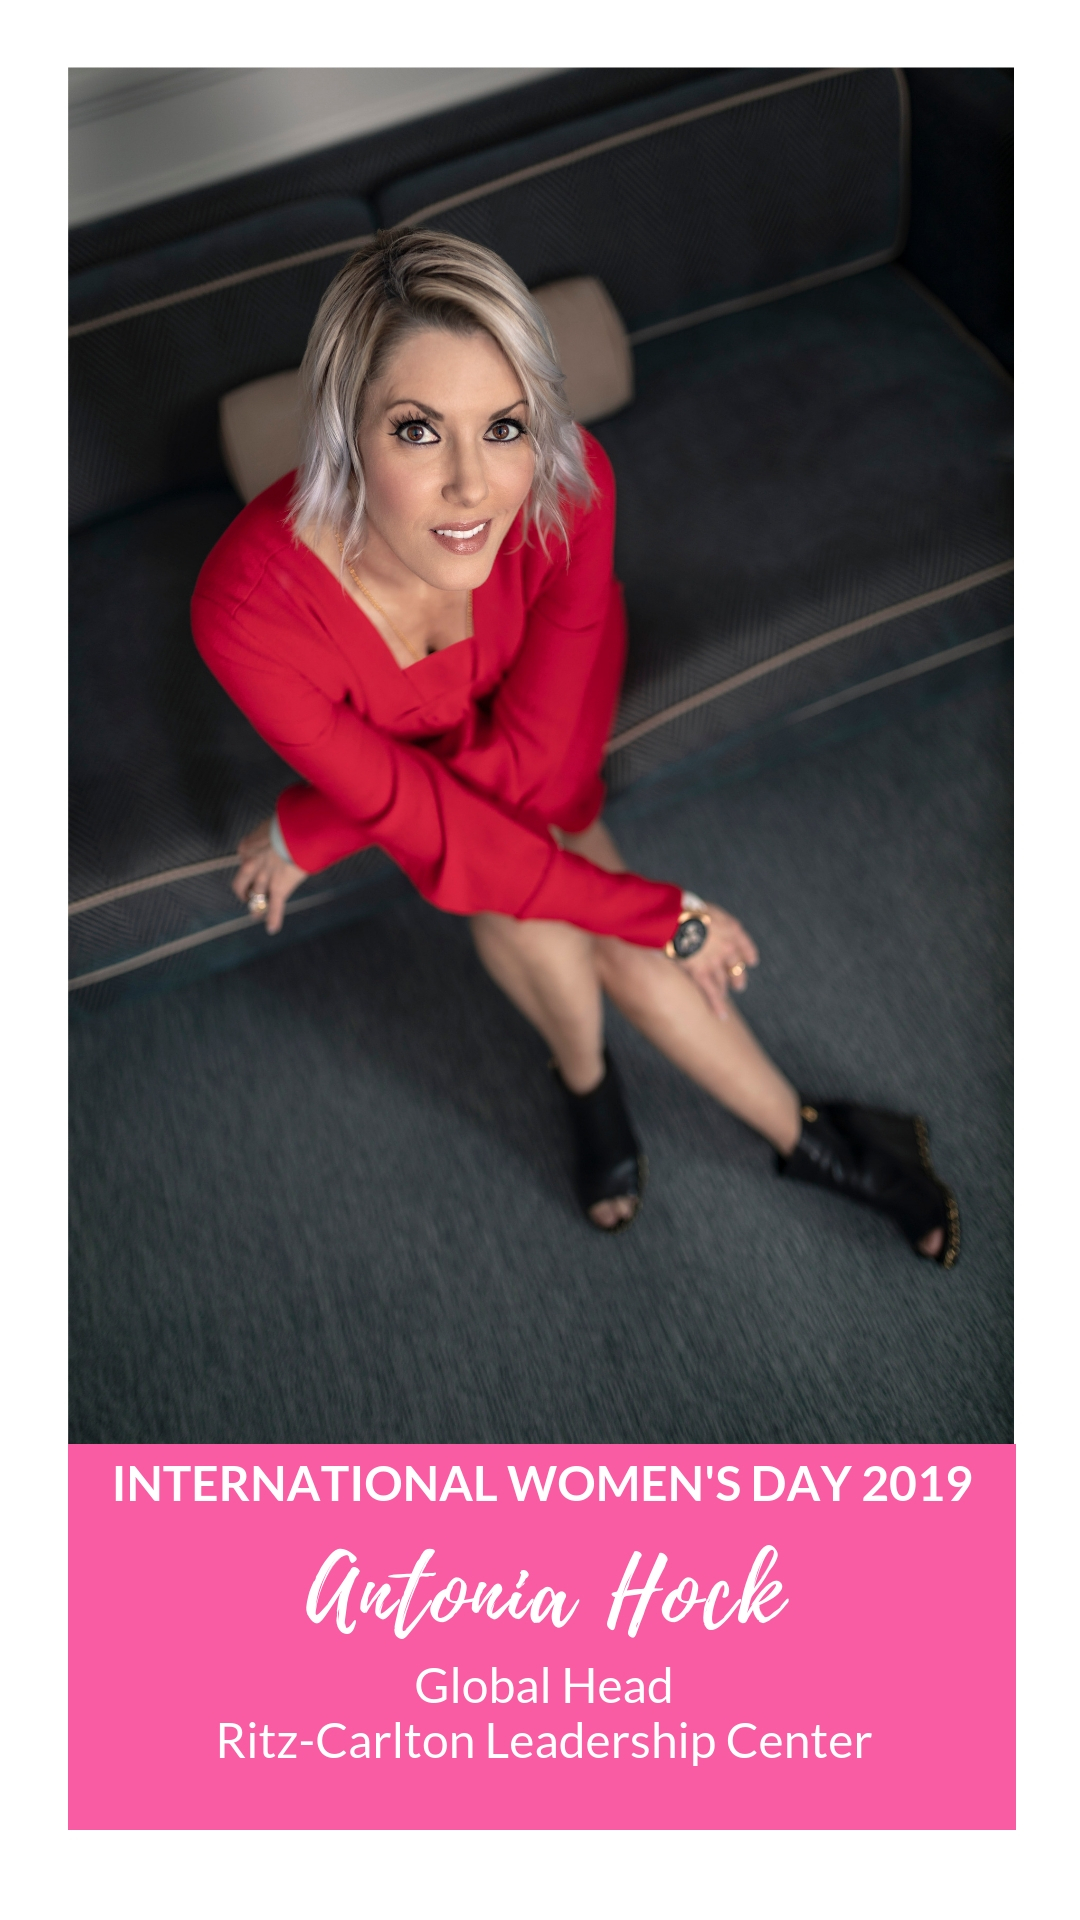 International Women's Day - Antonia Hock